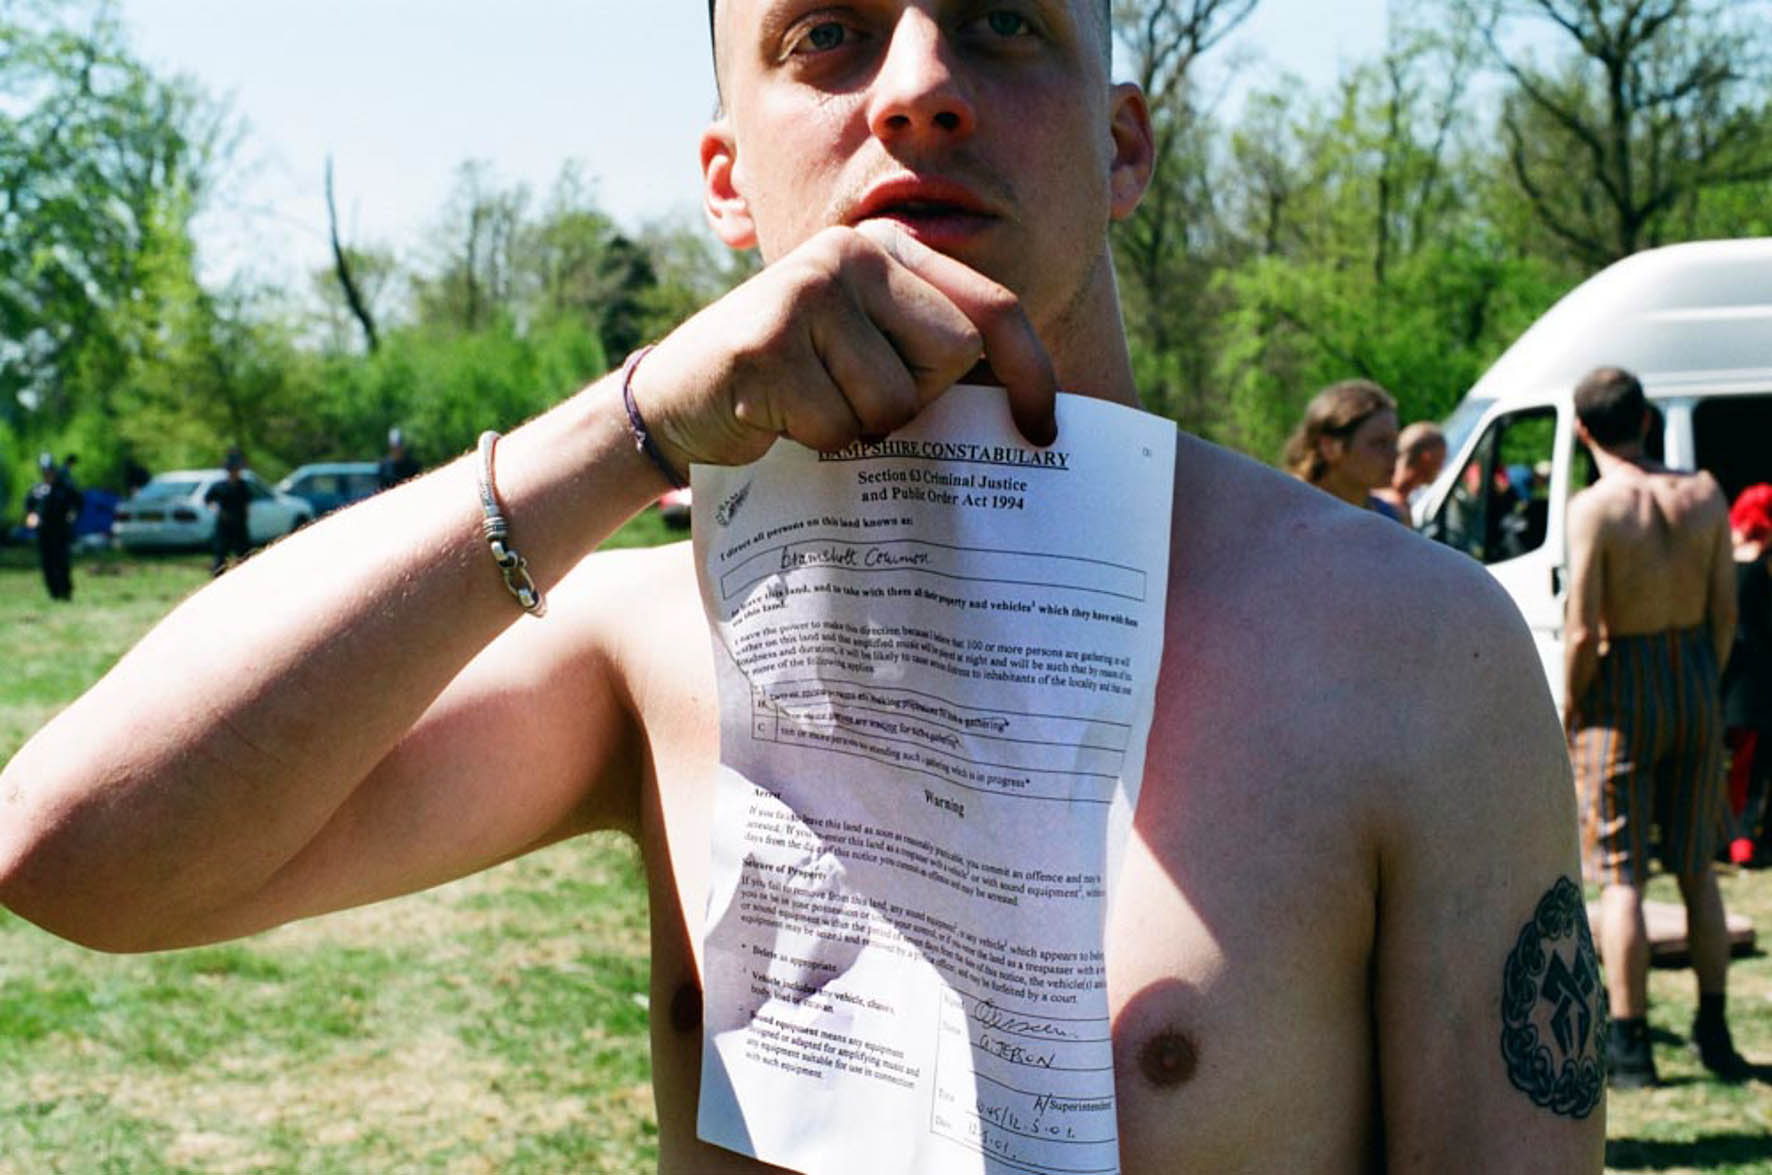 Molly Macindoe - Notice to leave -  Section 63 is served, UK Tek, Bramshott Common, Hampshire, 2001